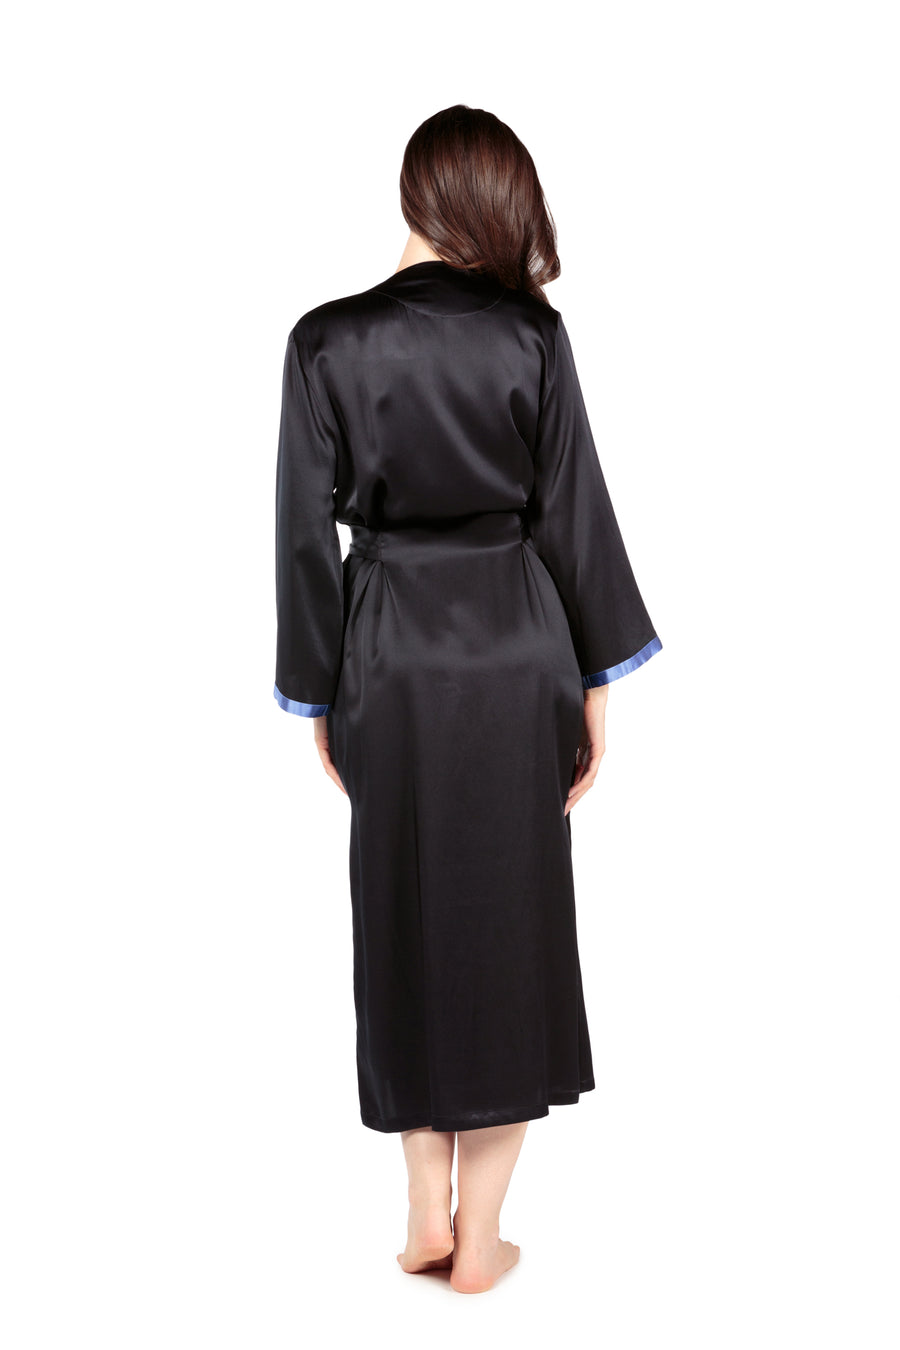 Beautibliss - Women's Silk Long Robe - TexereSilk